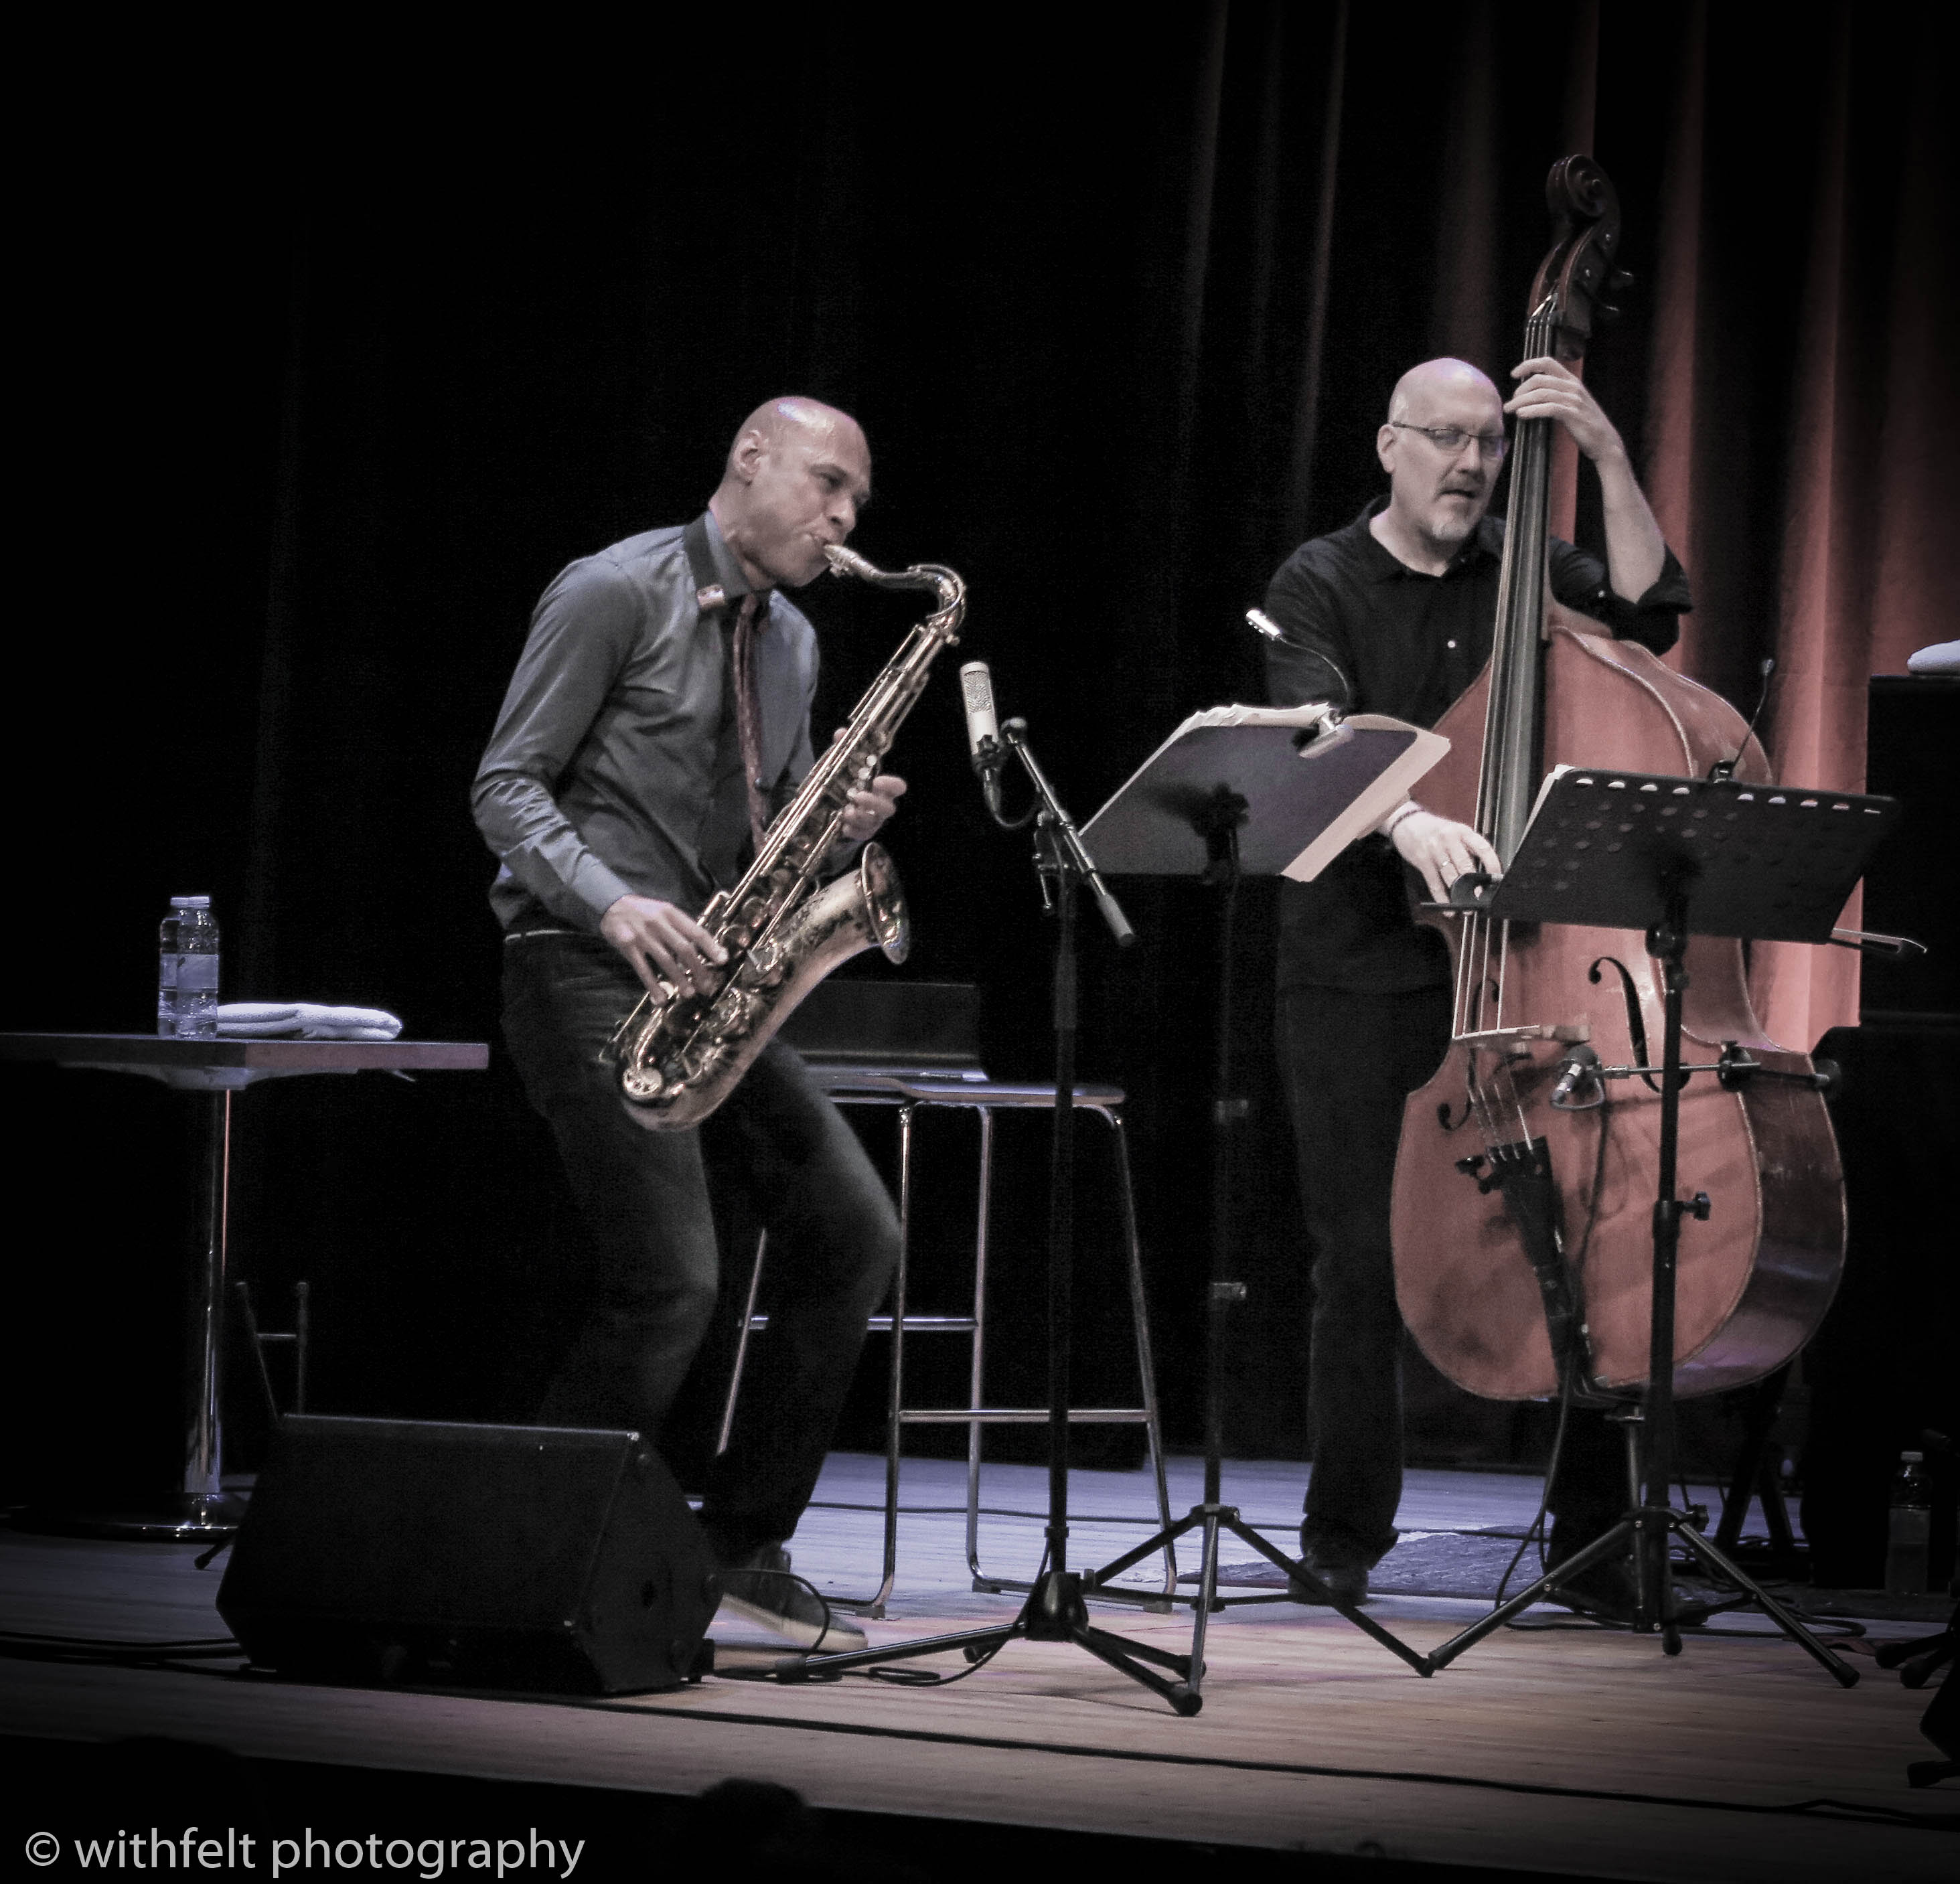 Joshua Redman & Scott Colley at Summer Jazz 2019, Denmark